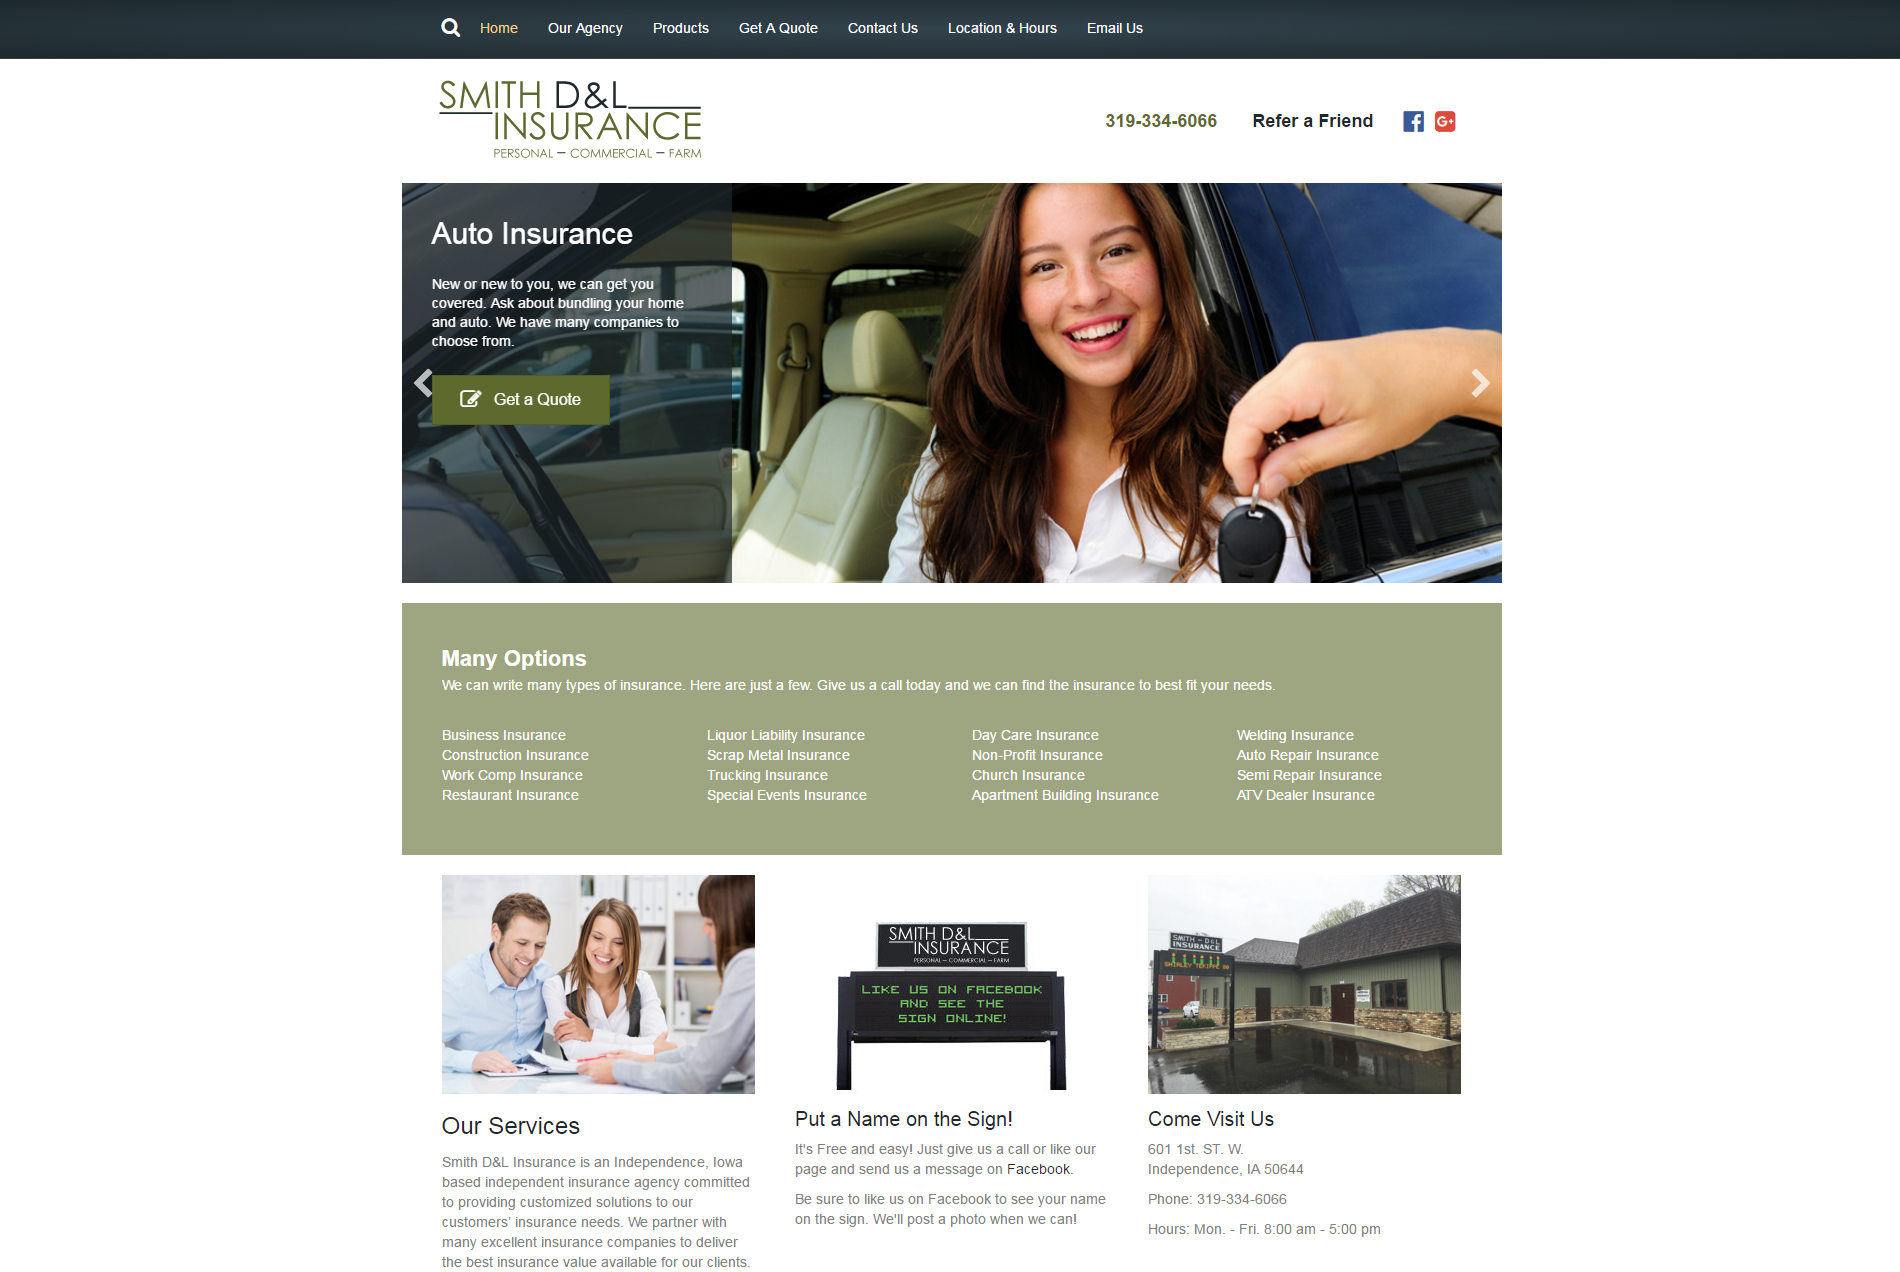 Smith D&L Insurance - Website